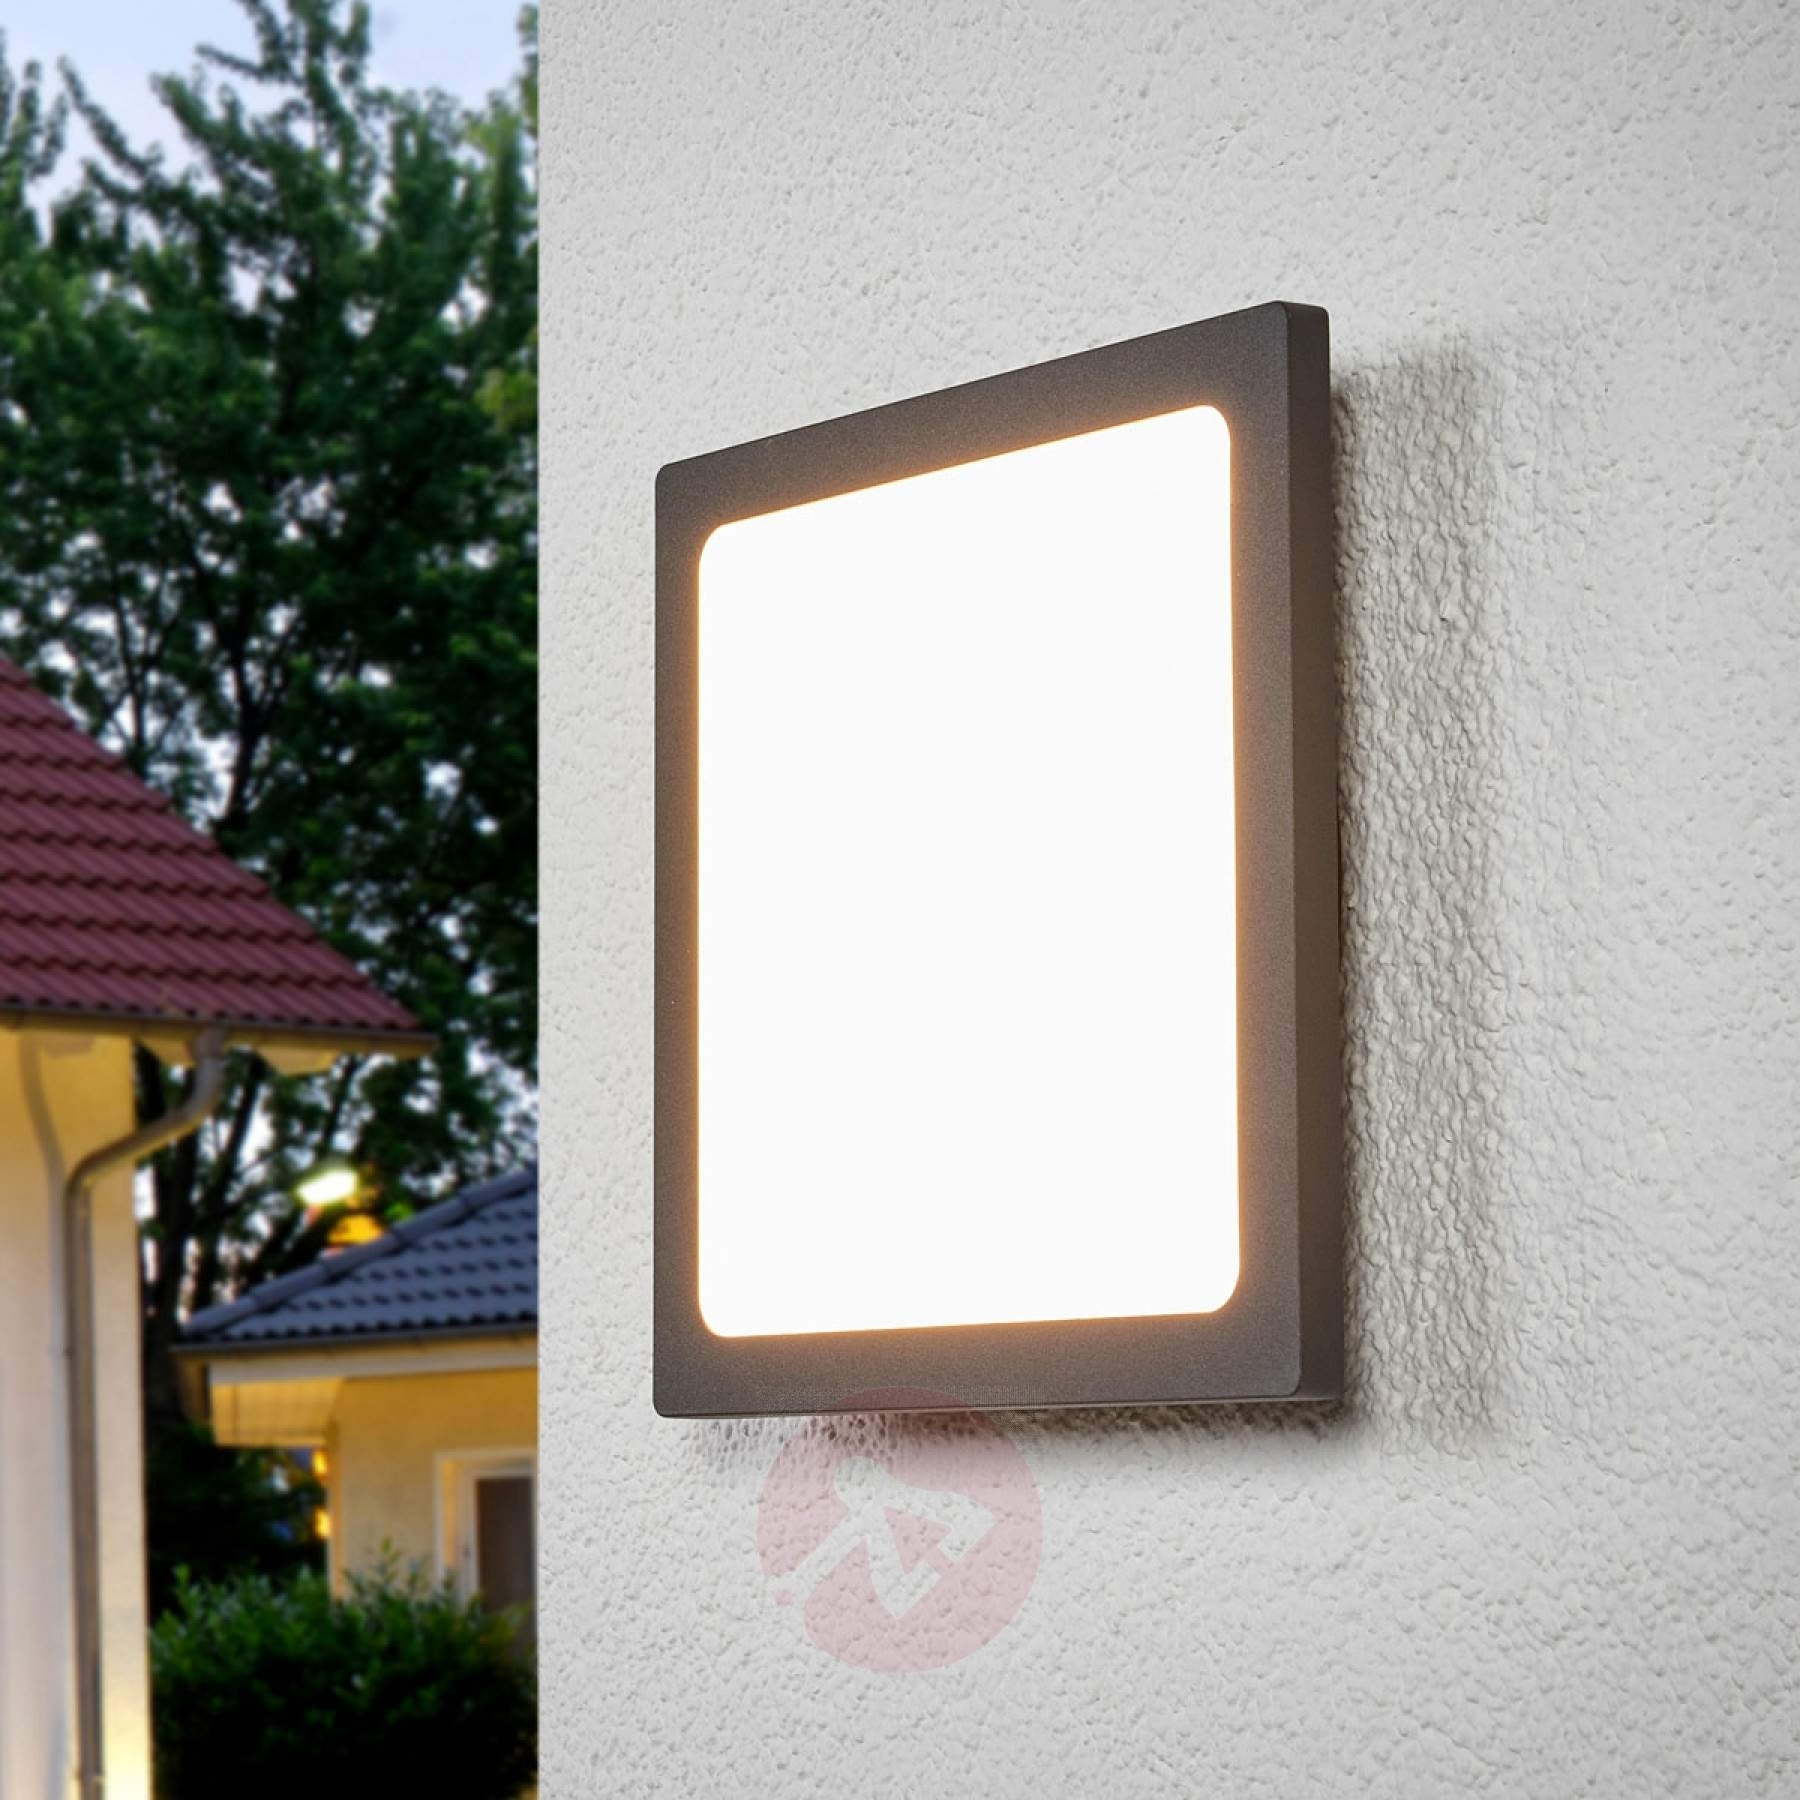 Inspiration about Mabella Led Outdoor Ceiling Lamp With Sensor | Lights.ie For Outdoor Ceiling Lights With Sensor (#11 of 15)